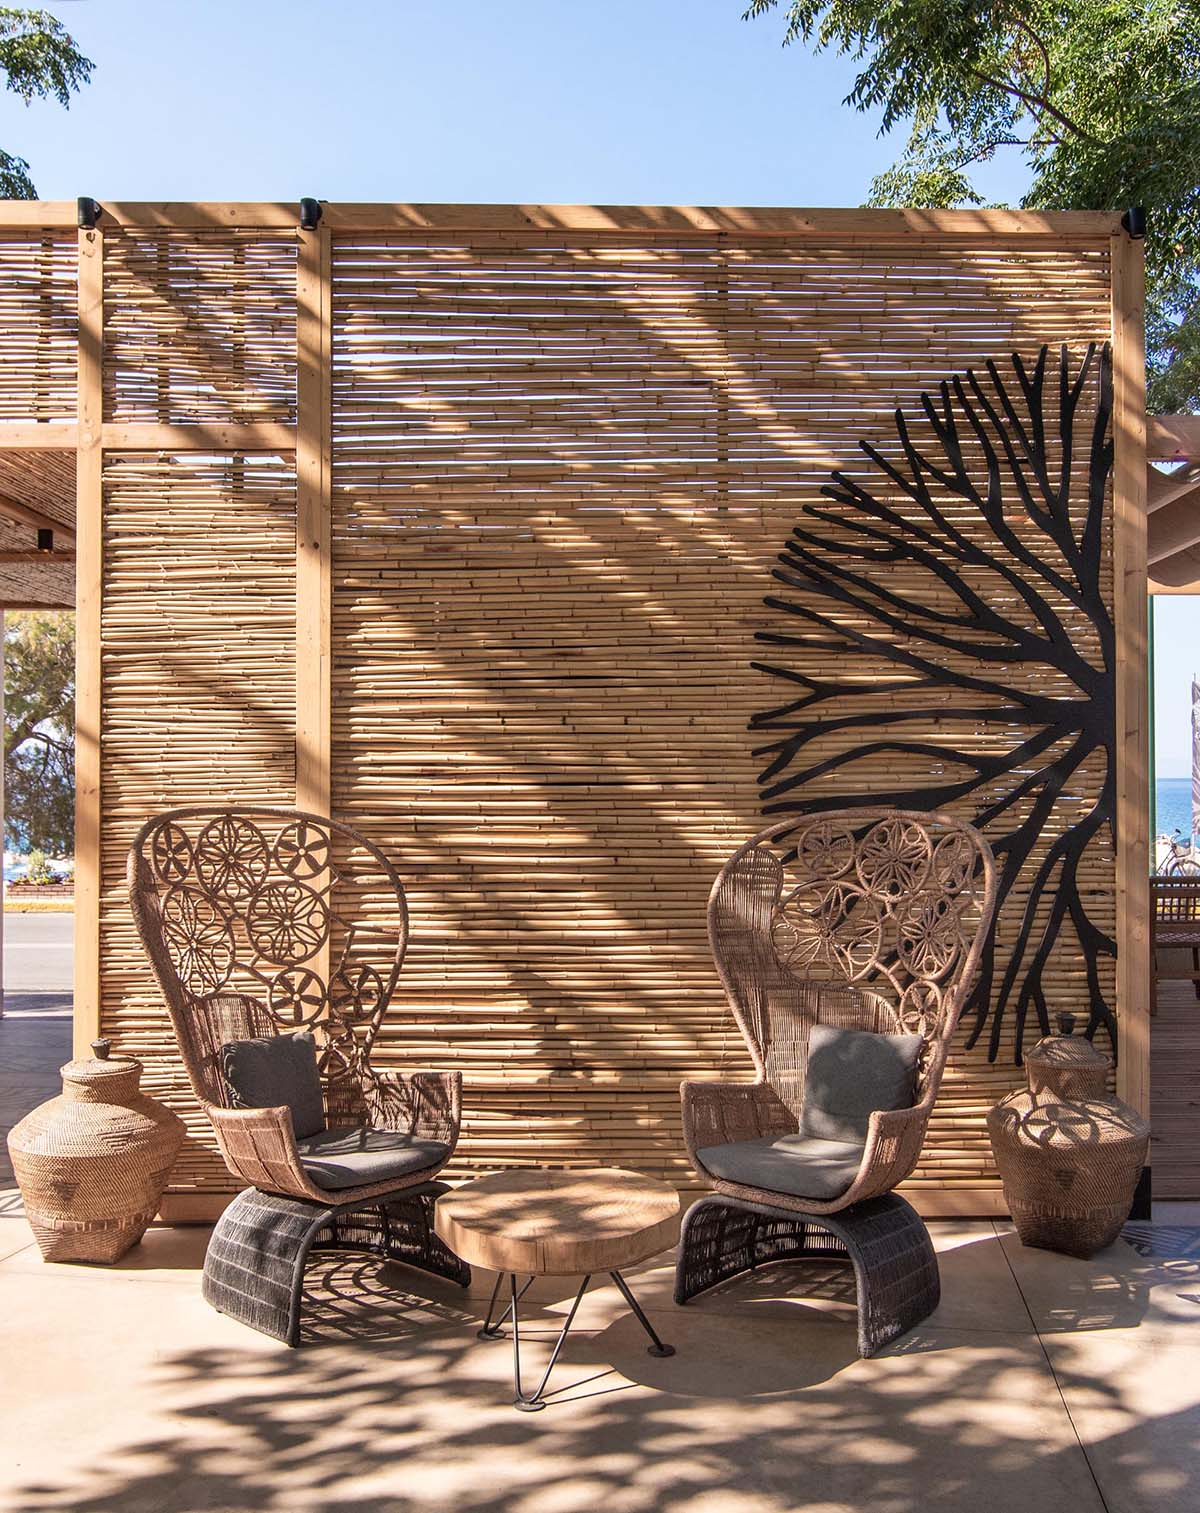 A modern outdoor restaurant with reed screens that provide shade and create a beach aesthetic.